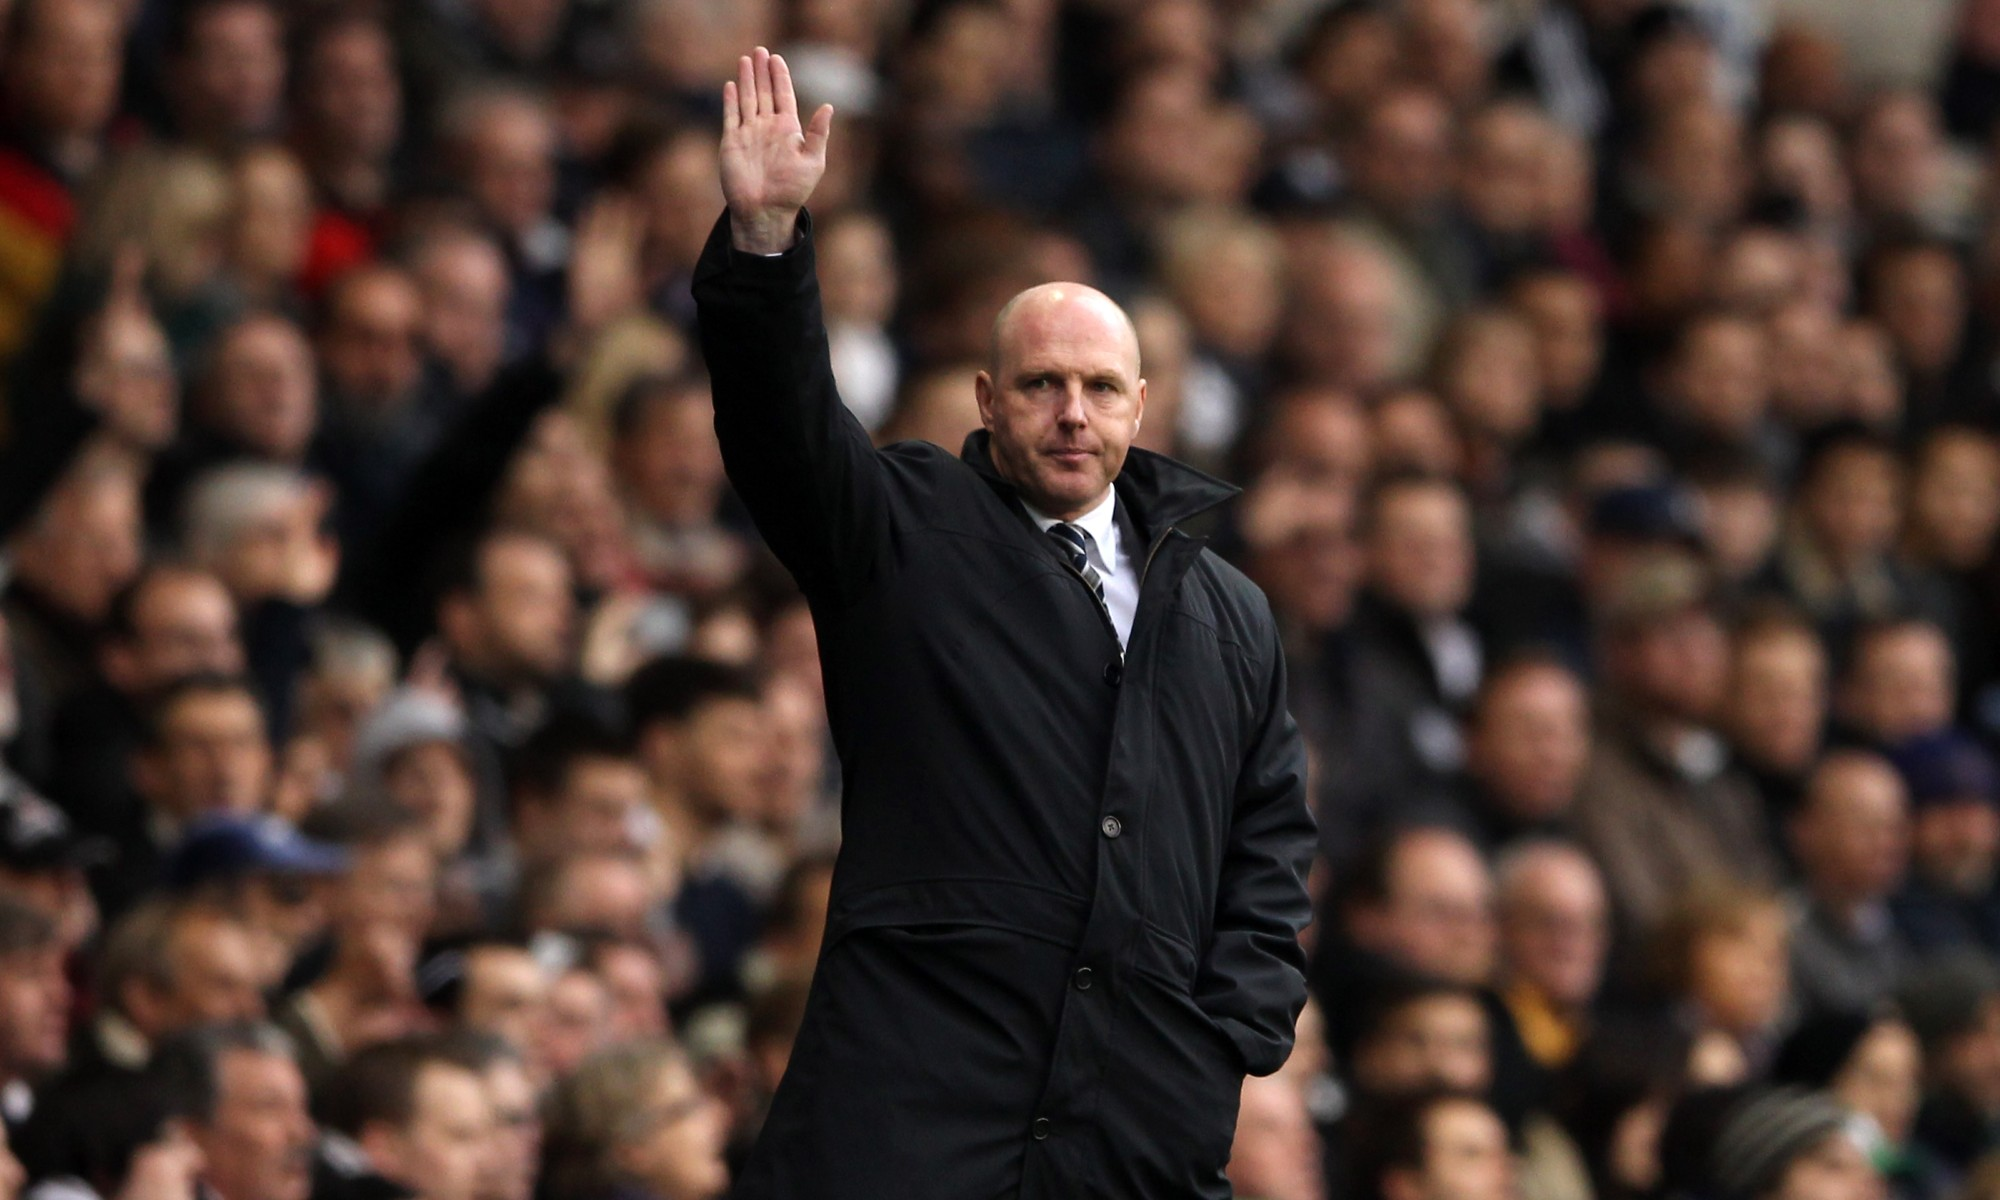 Steve Kean on the touchline during his time in charge of Blackburn Rovers in the English Premier League.